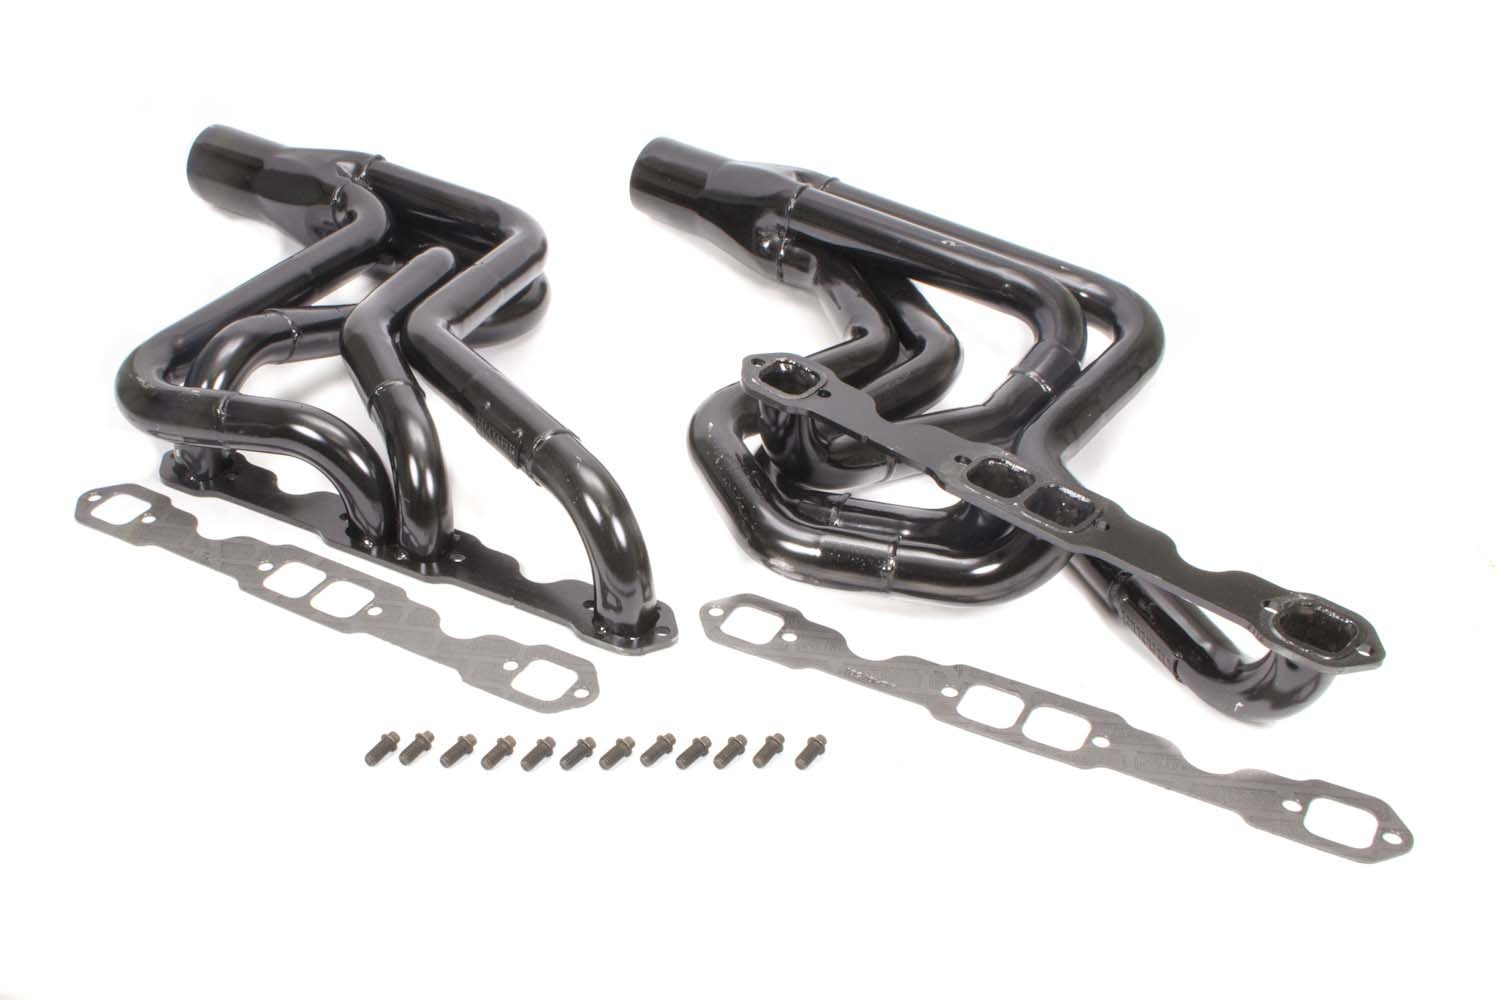 Street Stock Headers 1-3/4in - 1-7/8in